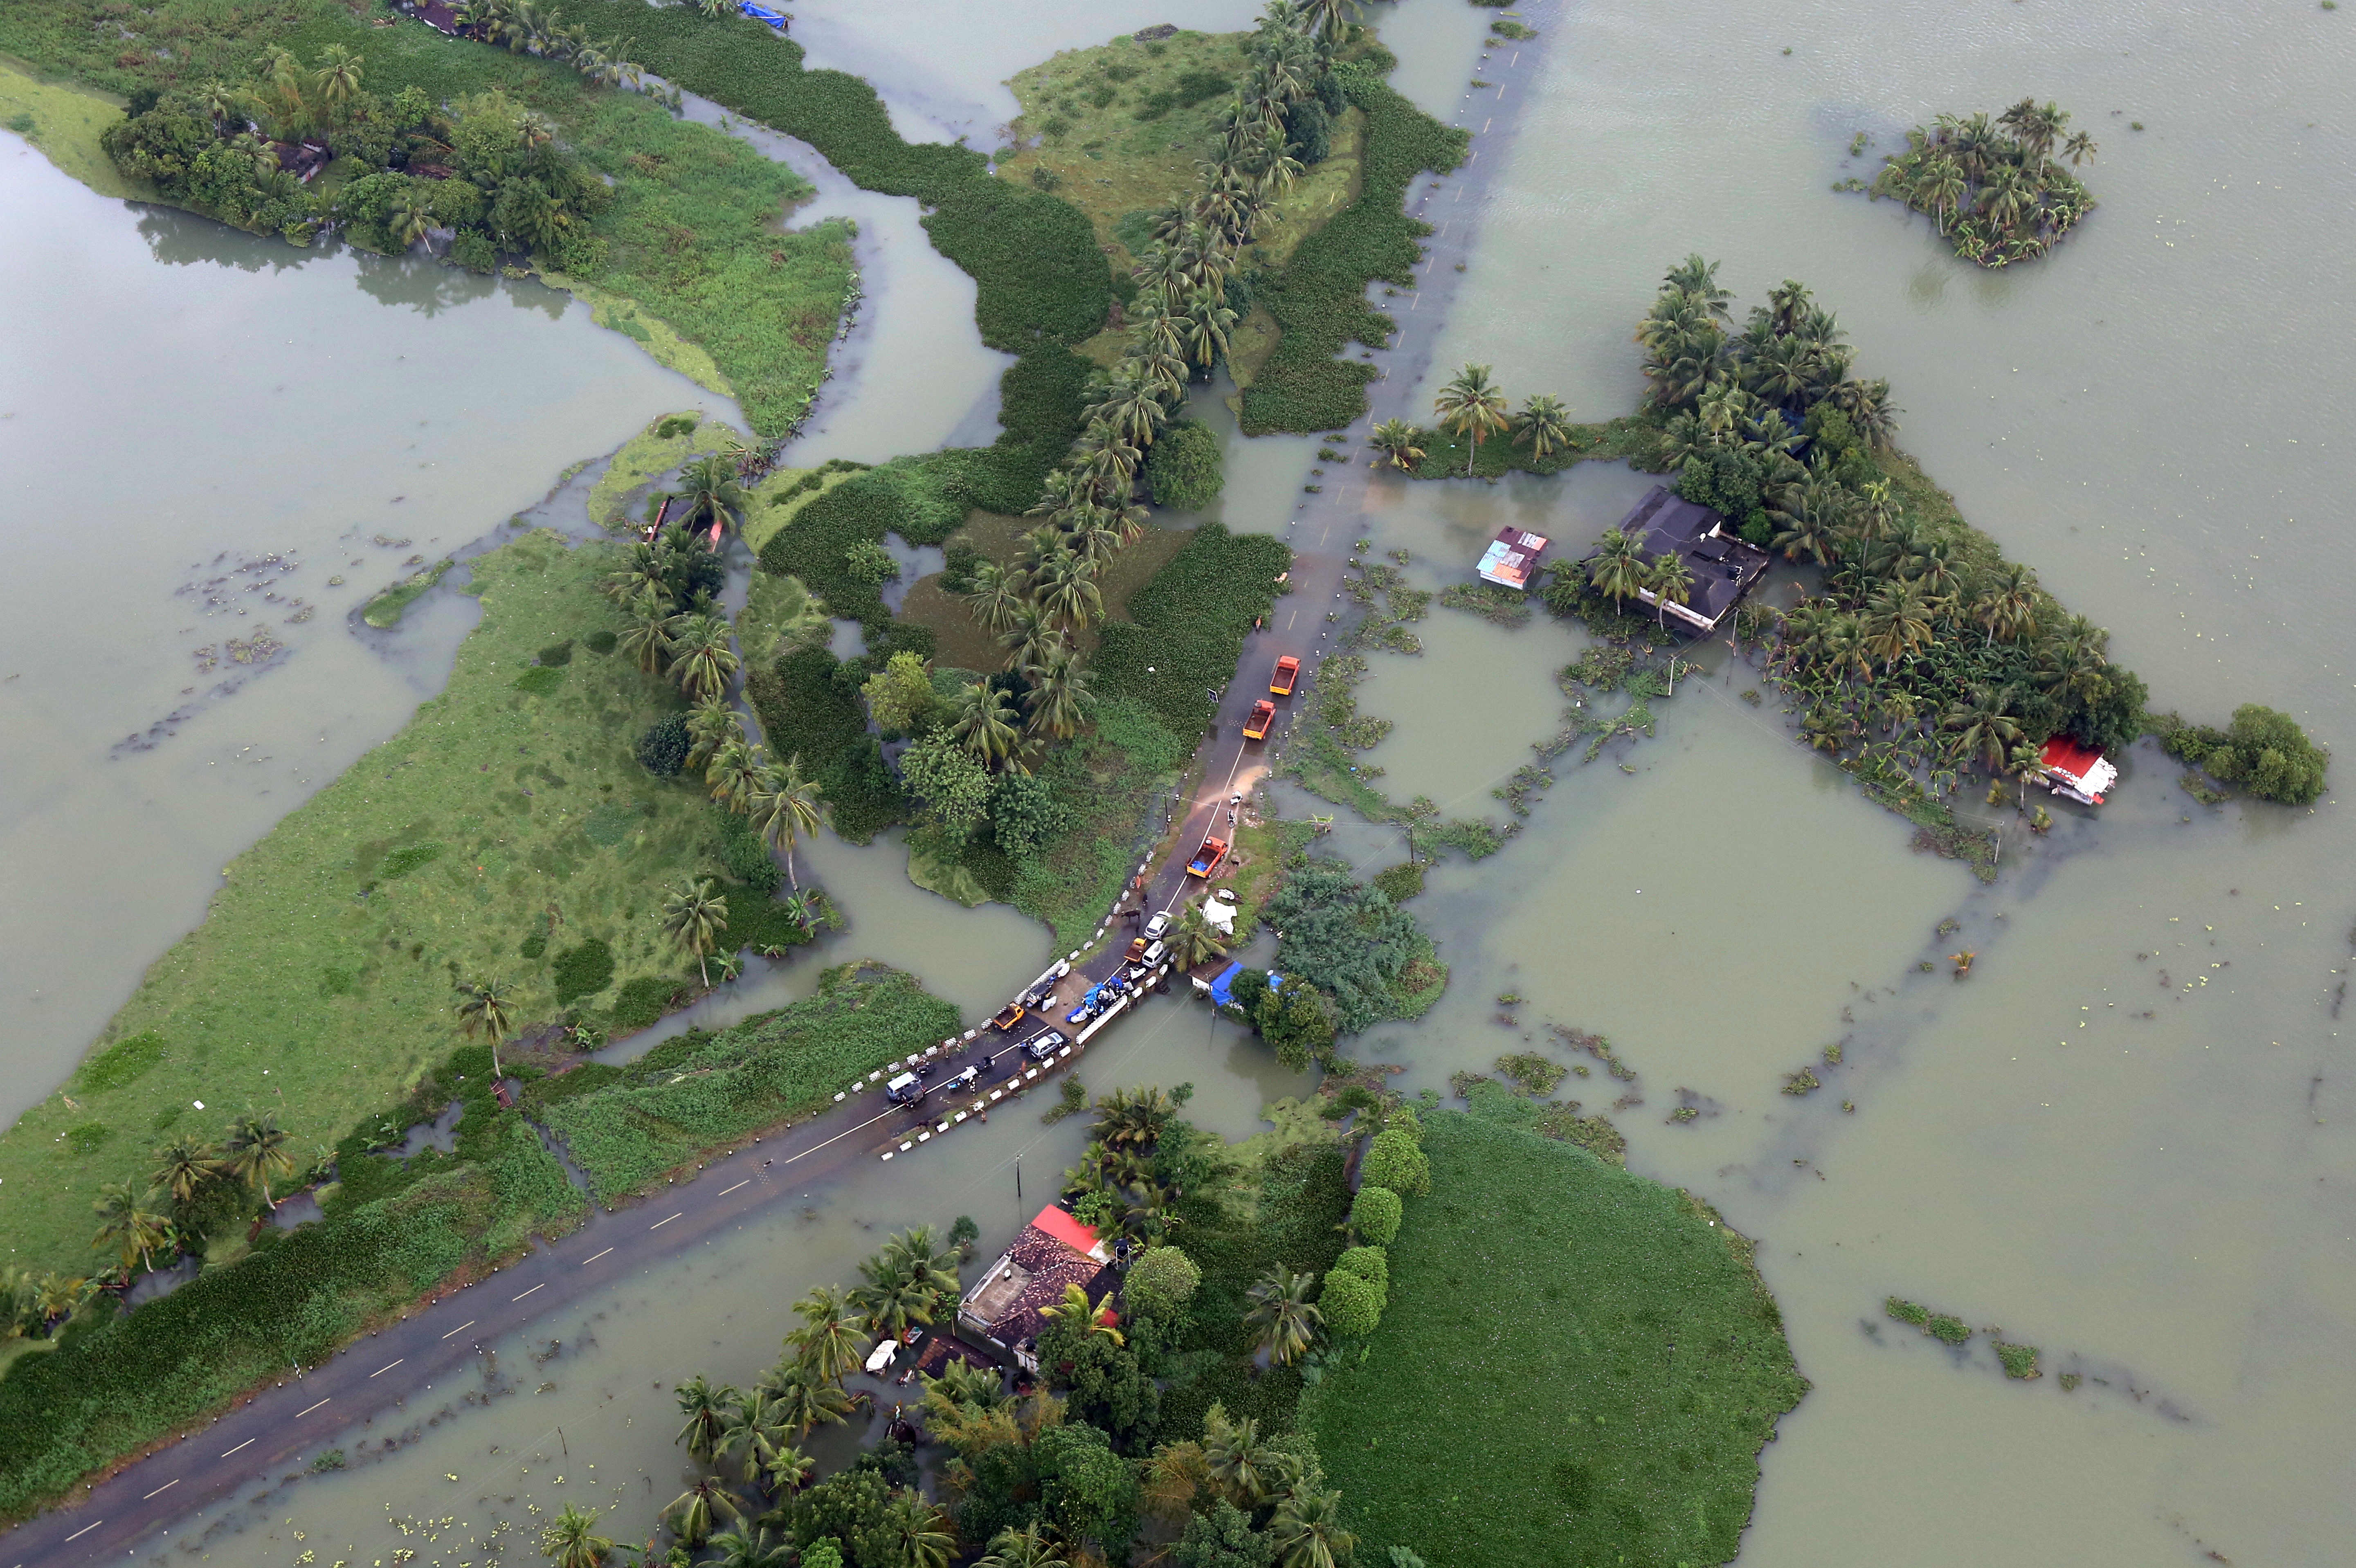 An aerial view shows a partially submerged road at a flooded area in the southern state of Kerala, India, August 19. REUTERS/Sivaram V